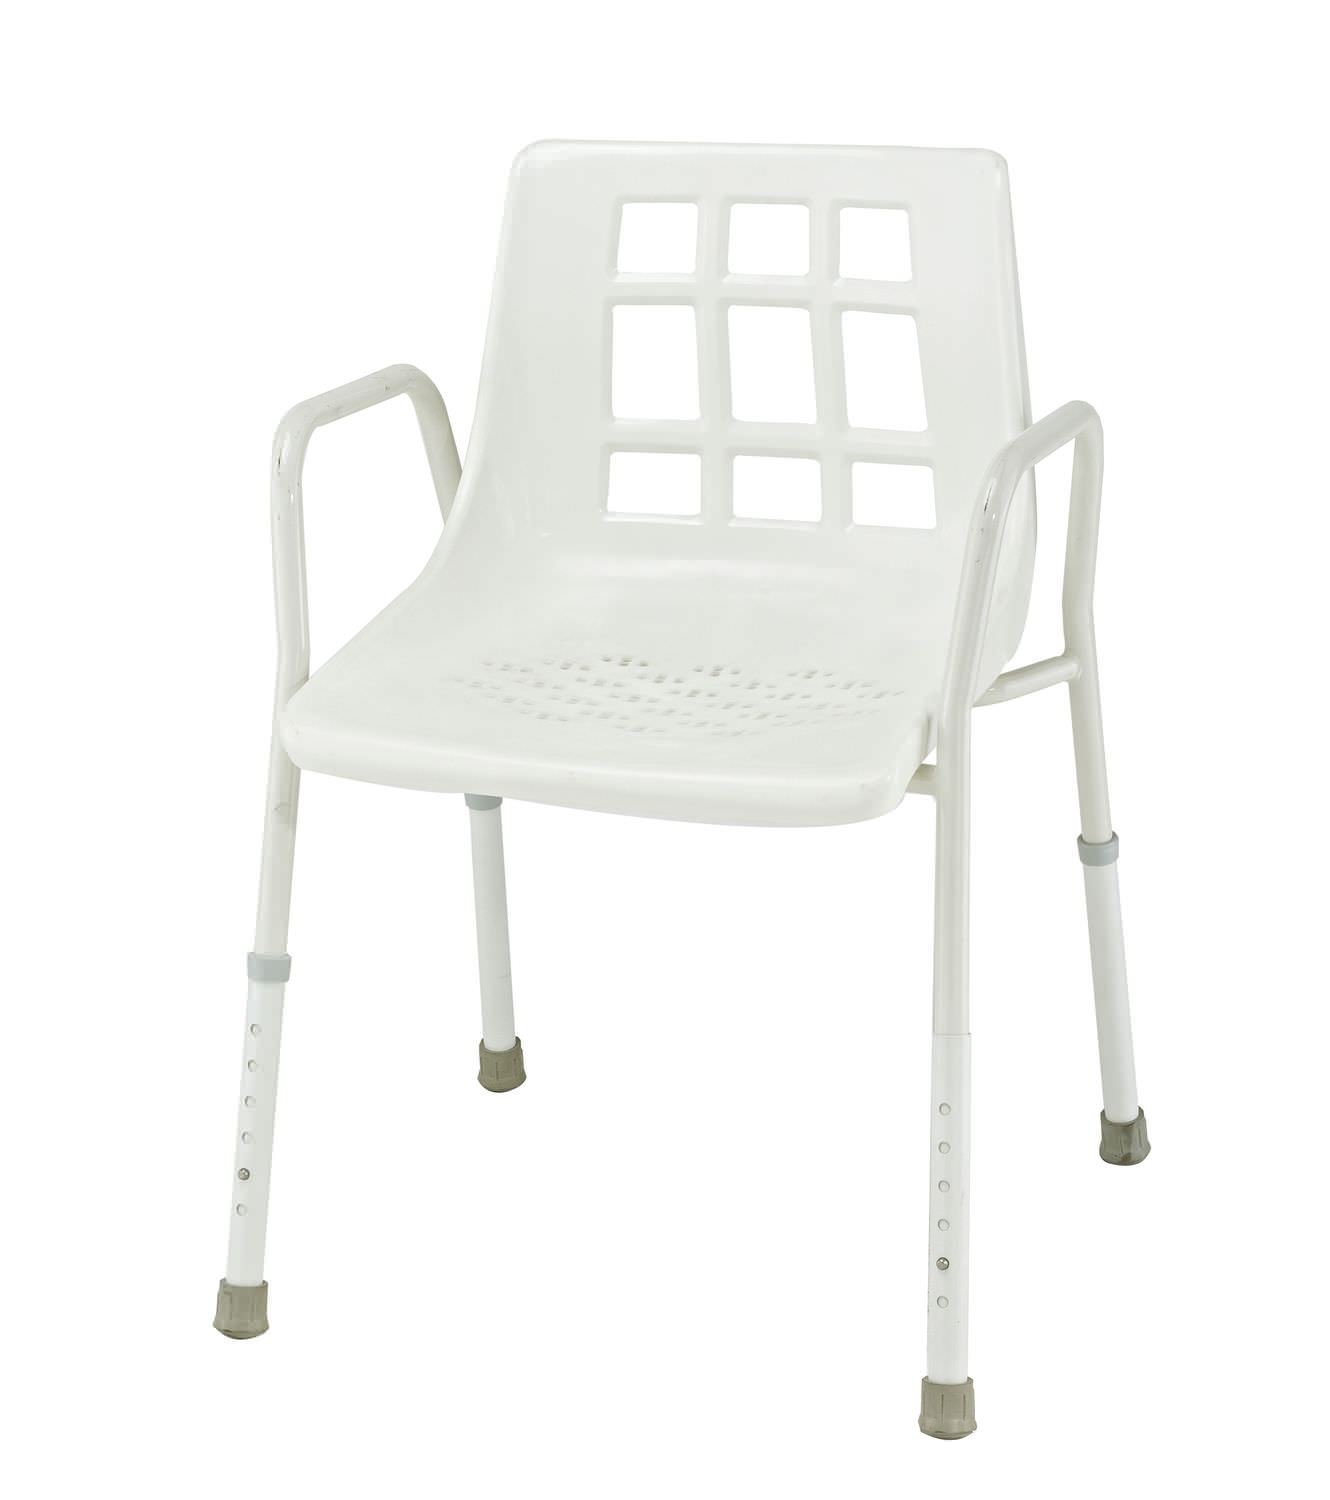 Tub Transfer Bench | Transfer Bath Chairs for Disabled | Transfer Tub Bench